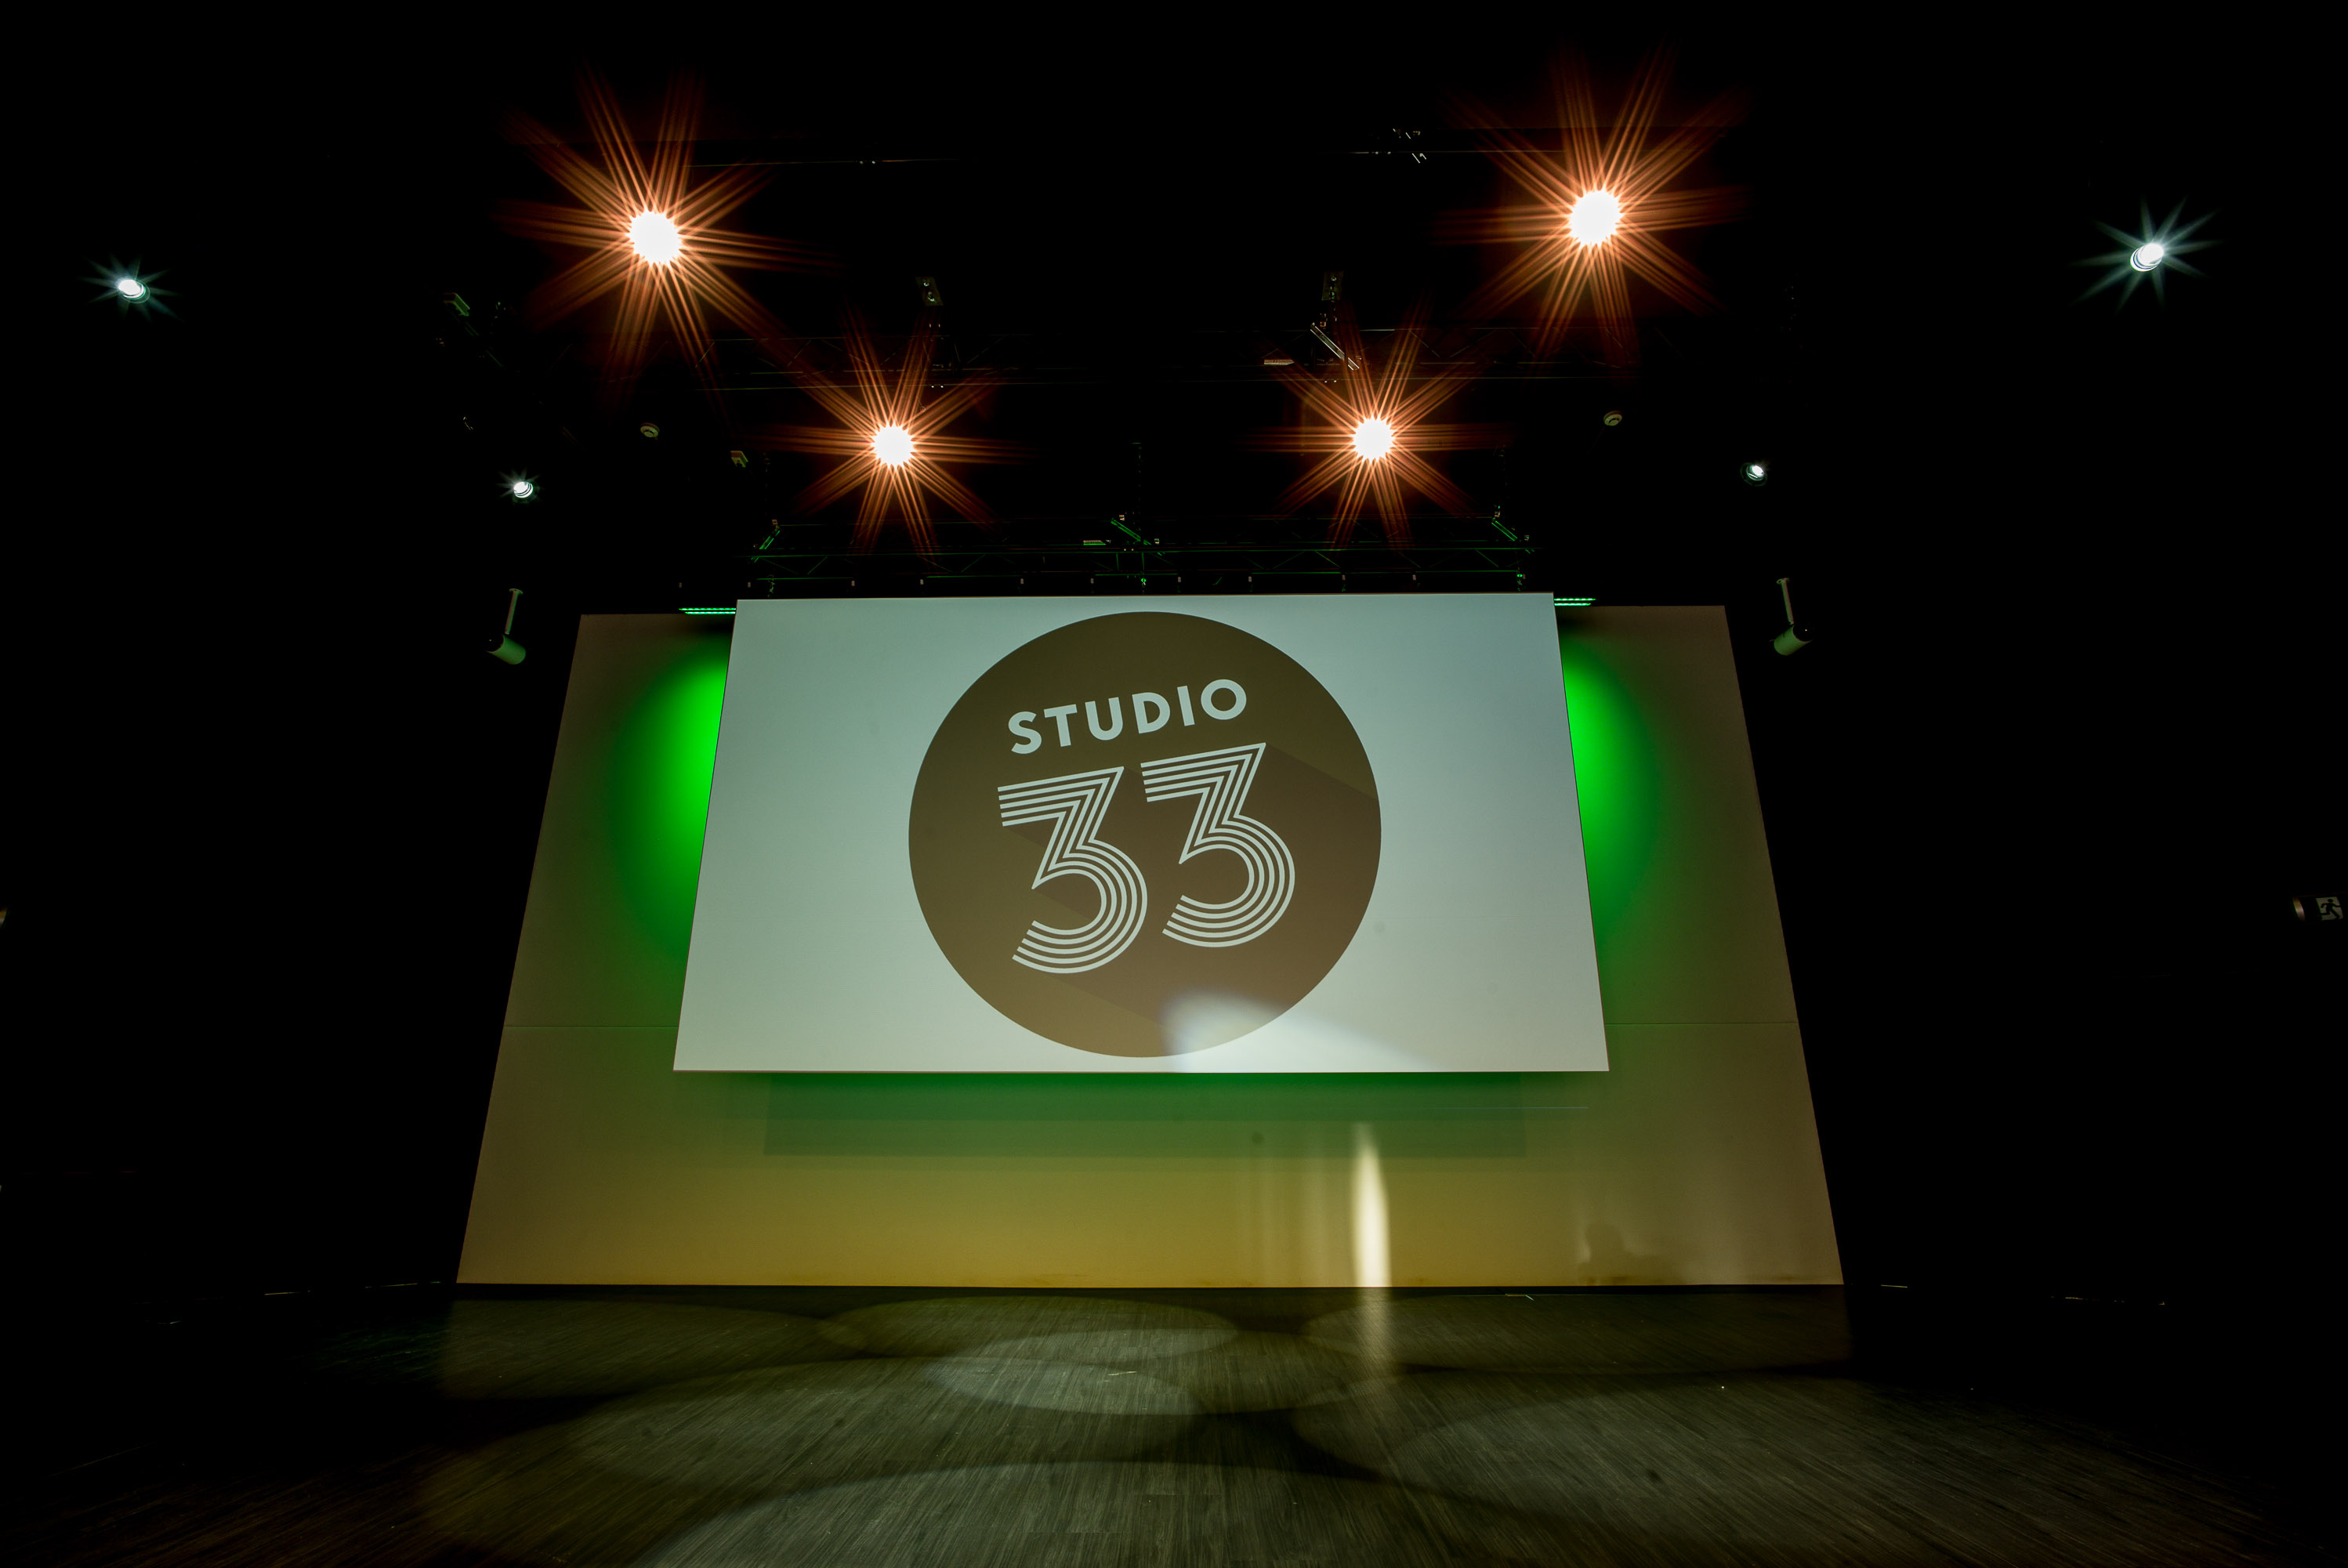 STUDIO33 - Podium, projectiescherm